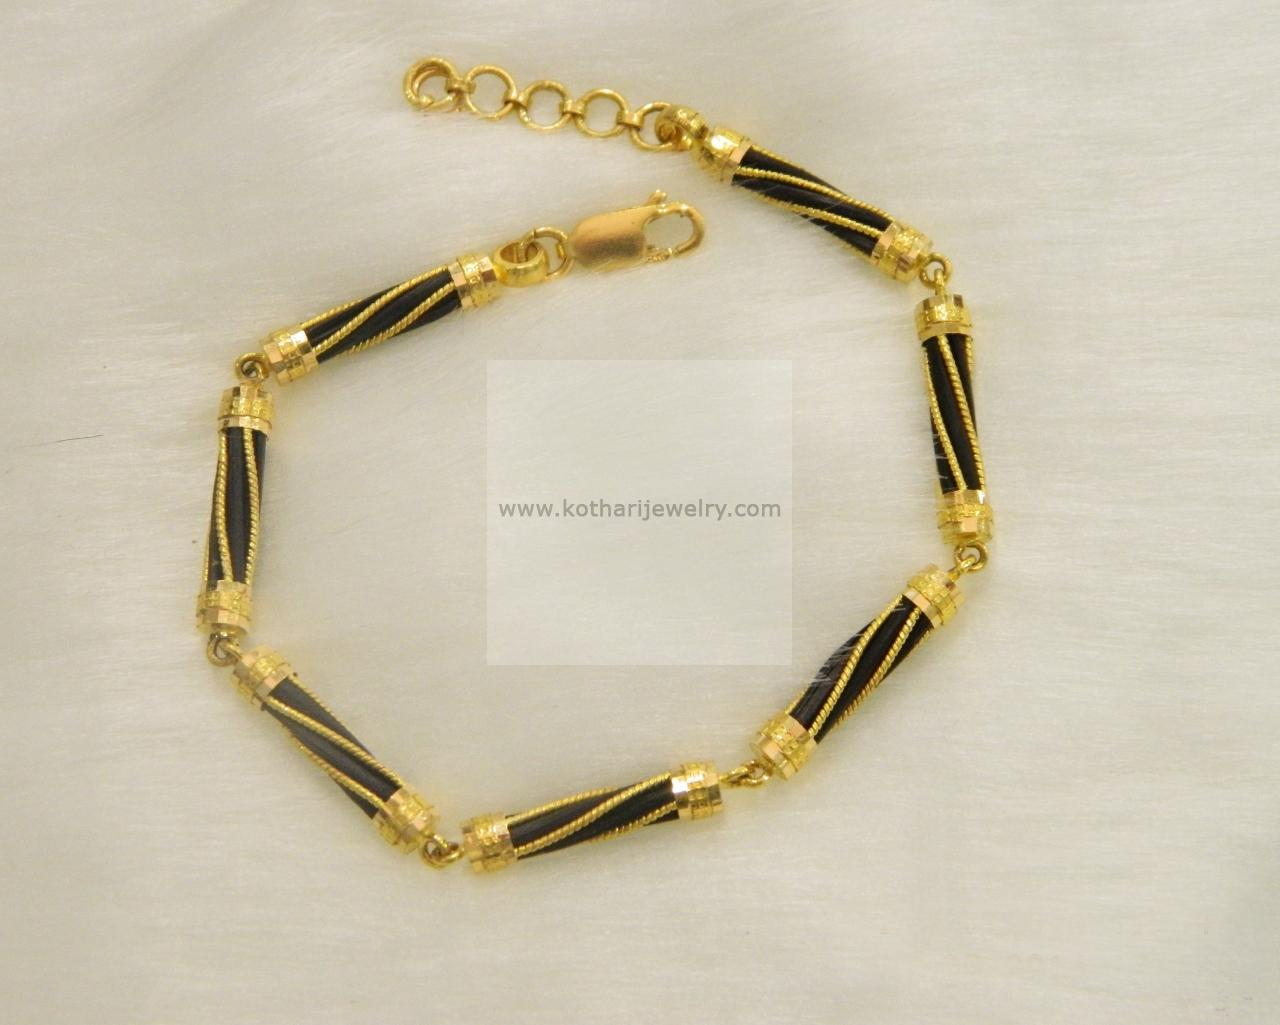 Gold Bracelet Catalogue Unique 59 Best Chunky Bracelets Images On Pinterest